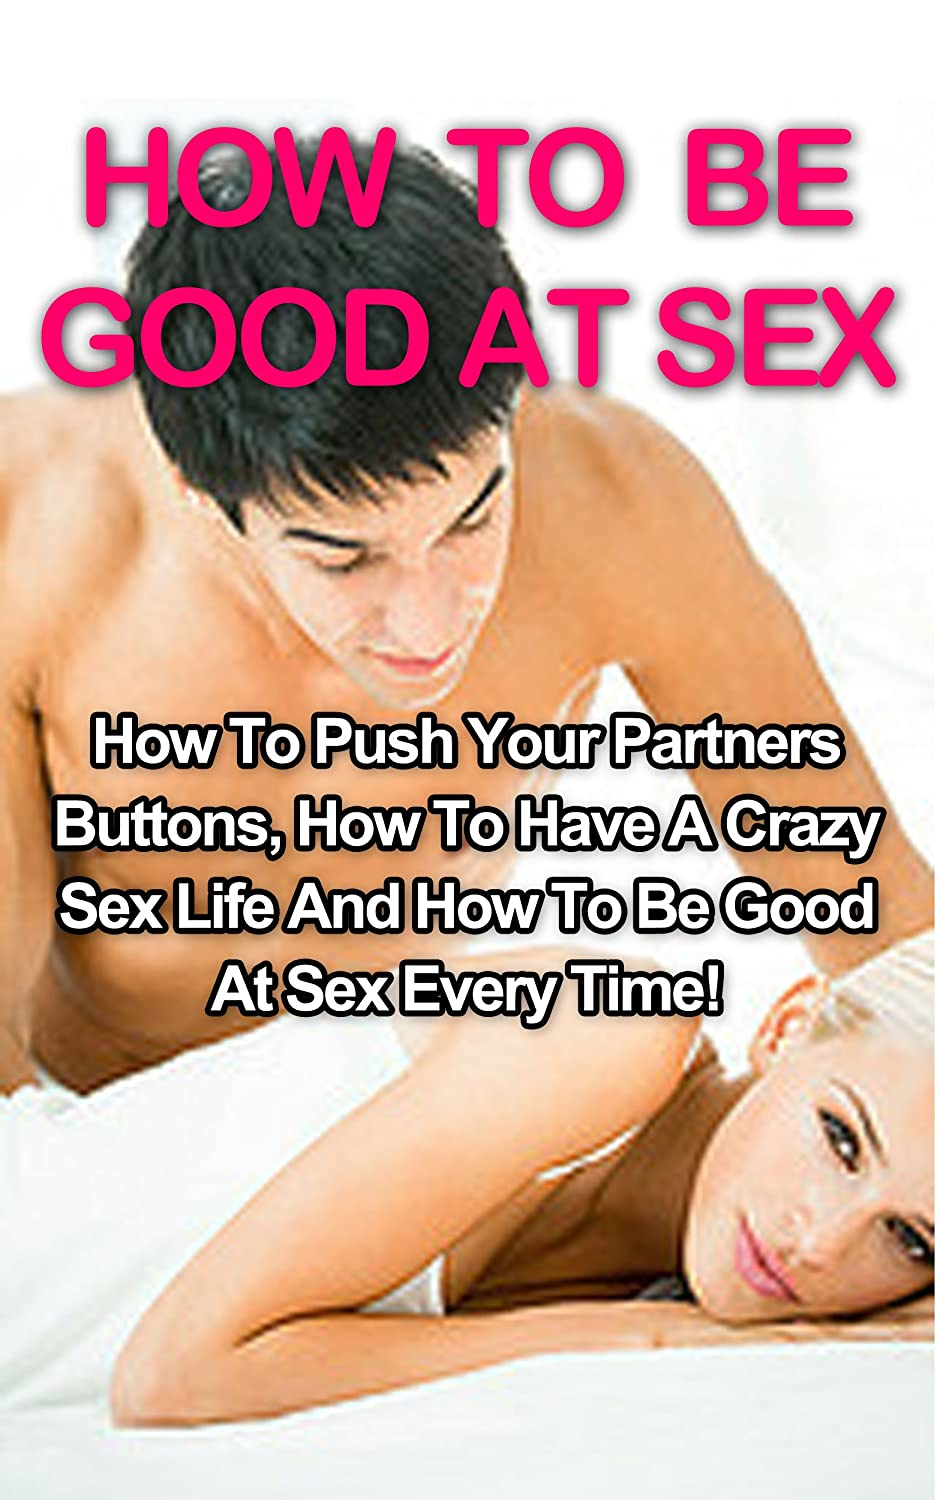 How be good at sex